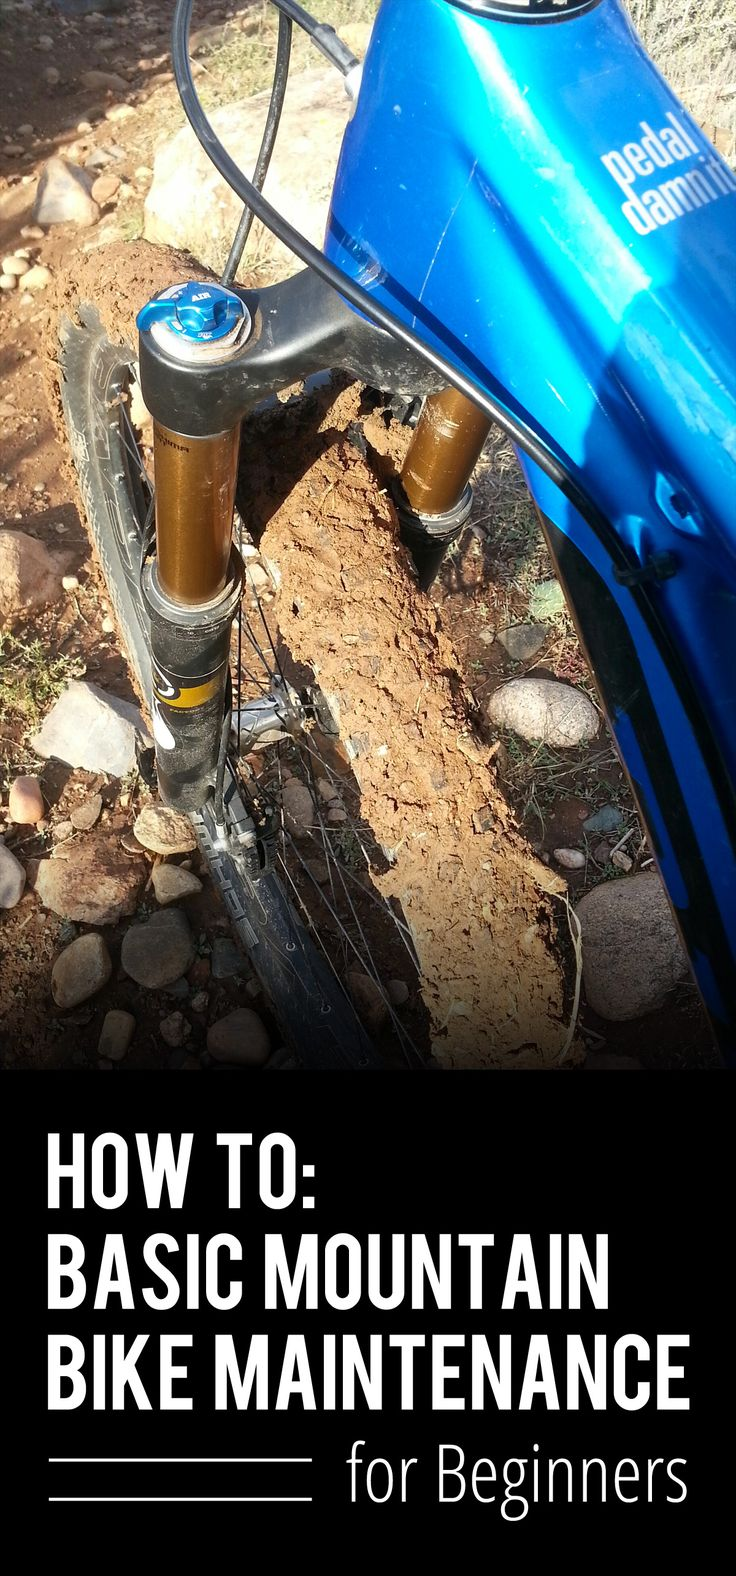 How to: Basic Mountain Bike Maintenance for Beginners